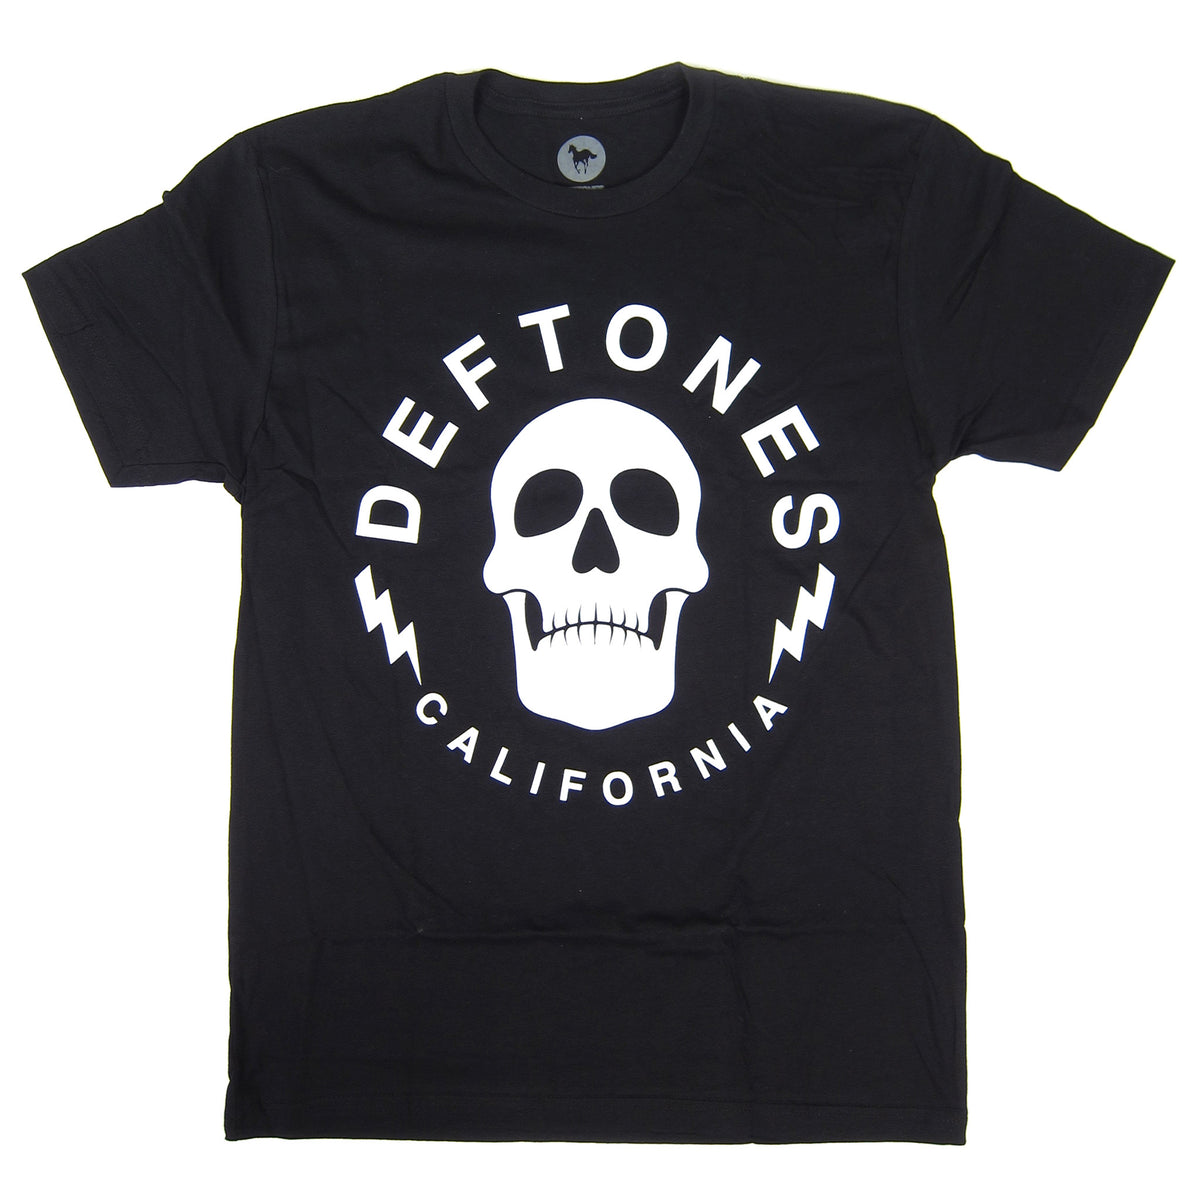 Deftones: Skullbolt California Tour Shirt - Black